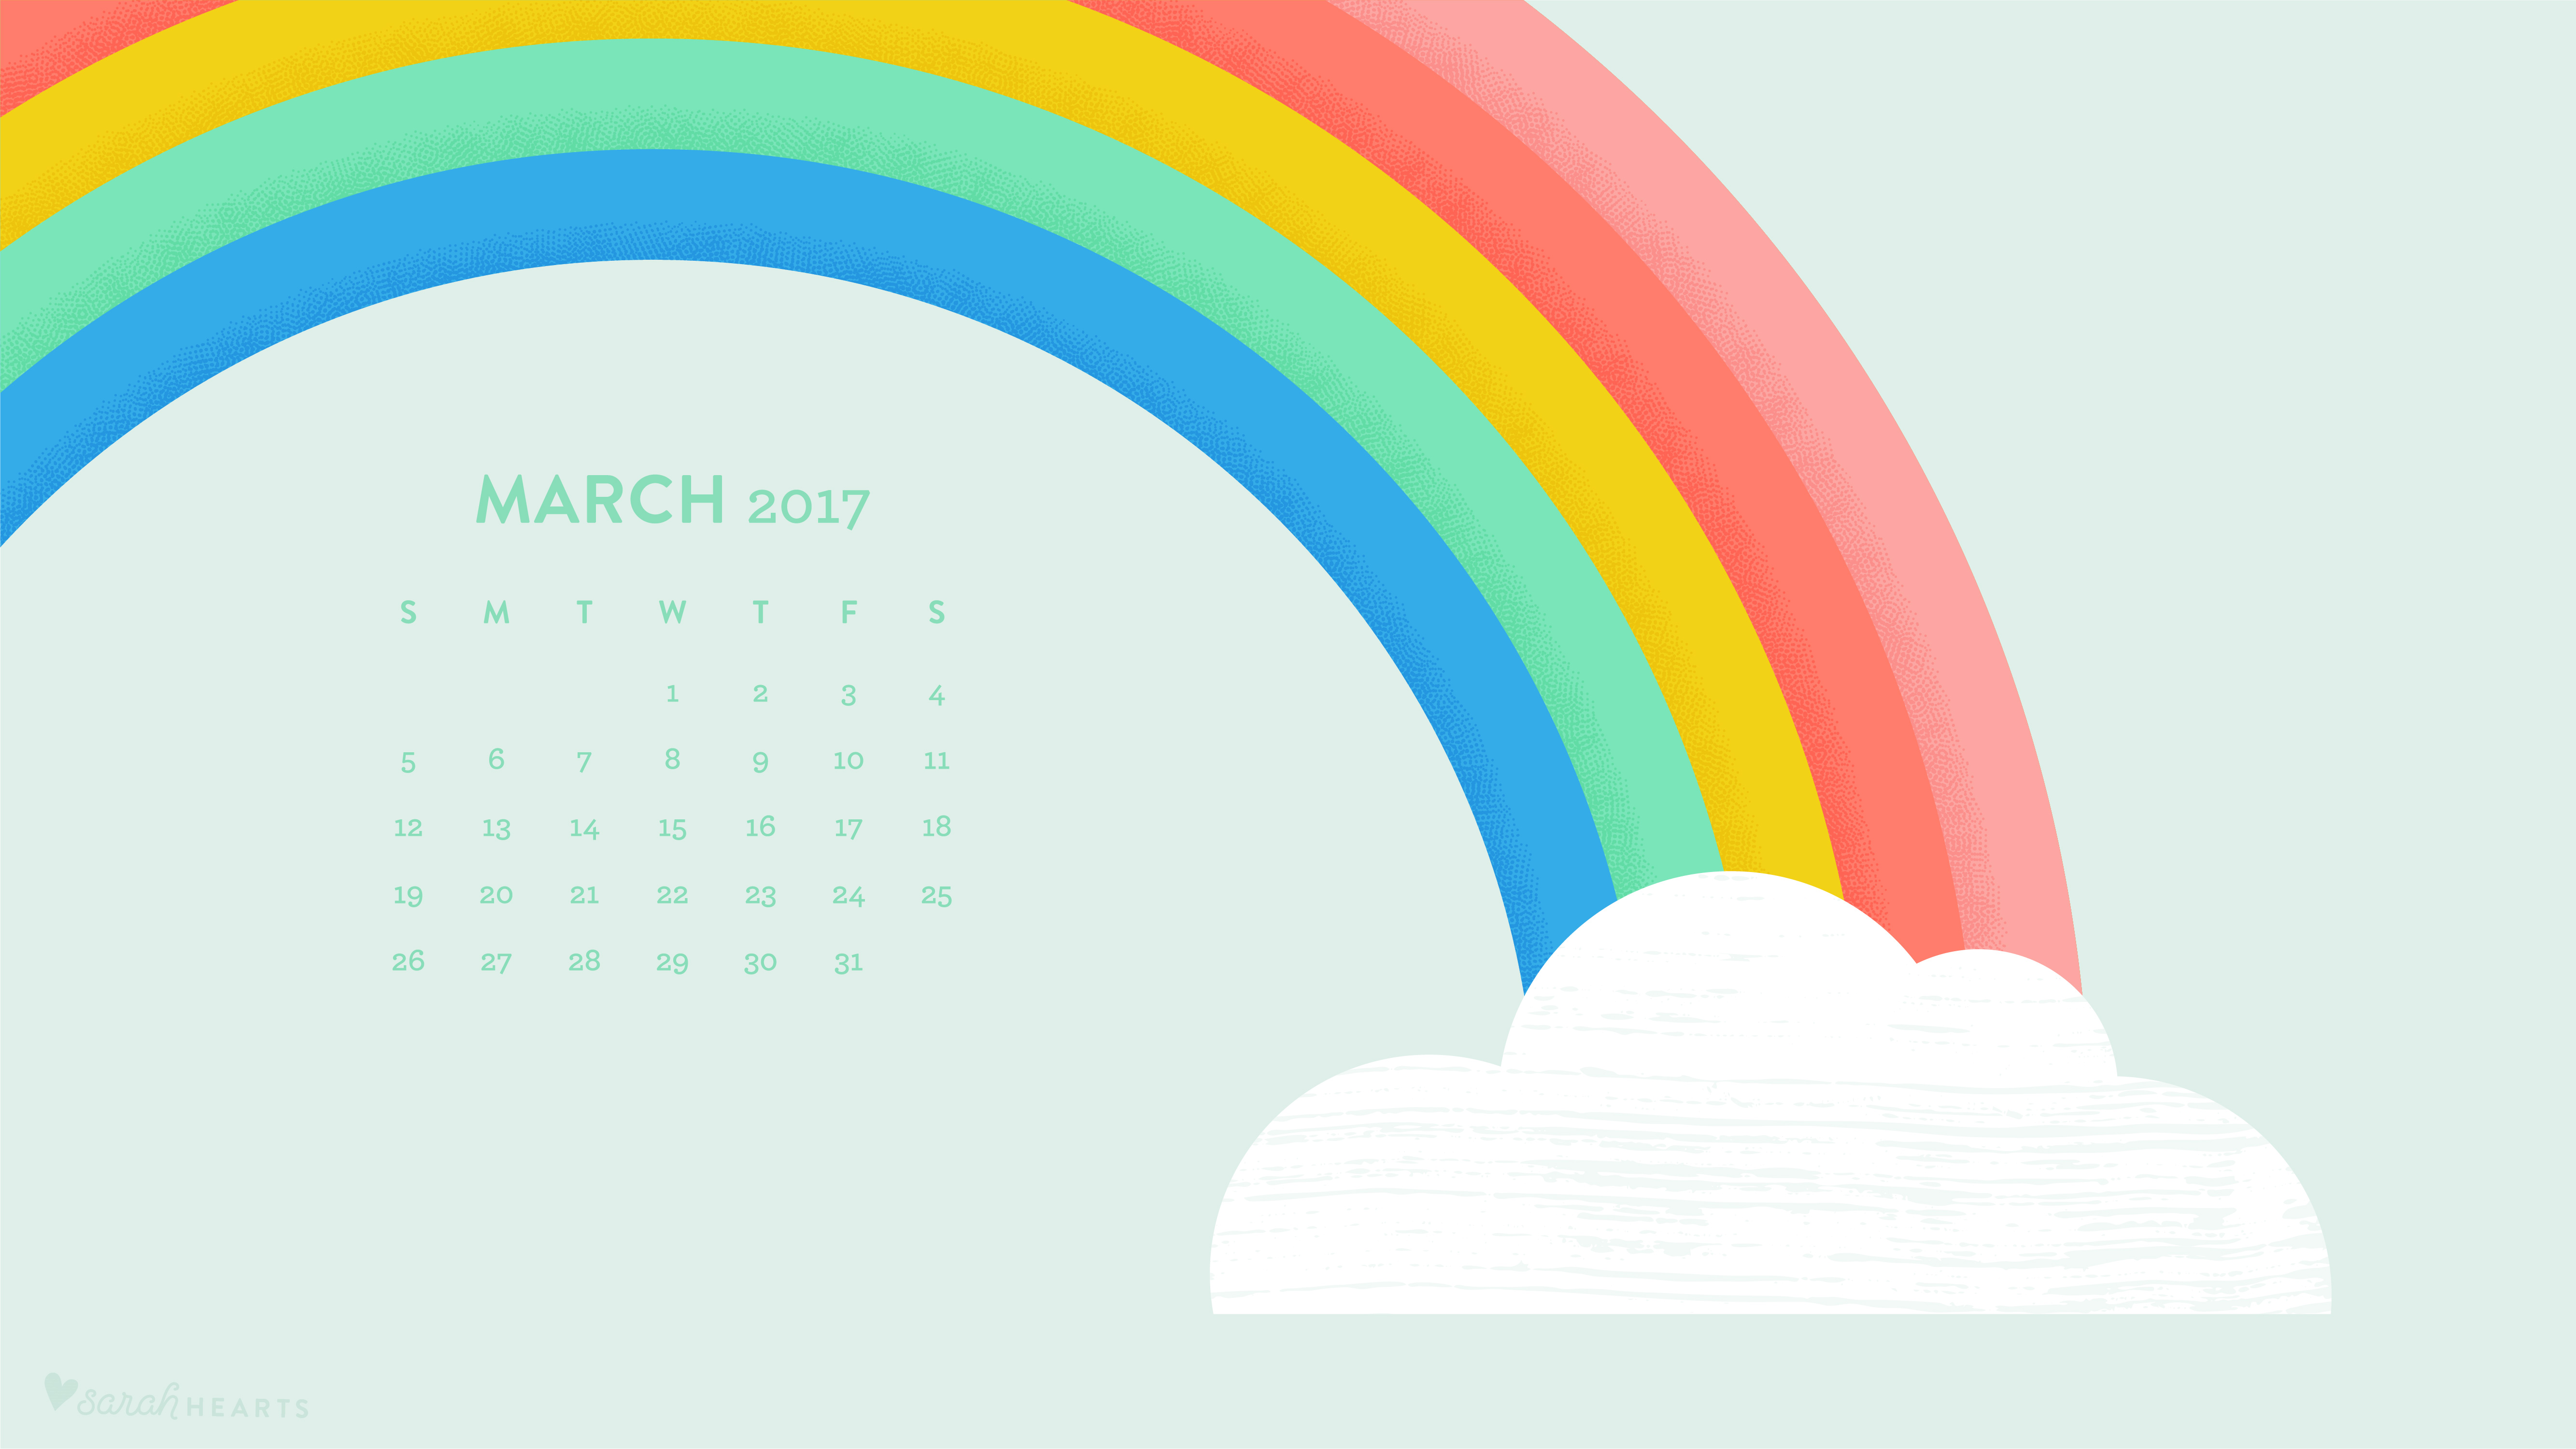 Graphic Designer Quote Wallpaper Rainbow March 2017 Calendar Wallpaper Sarah Hearts